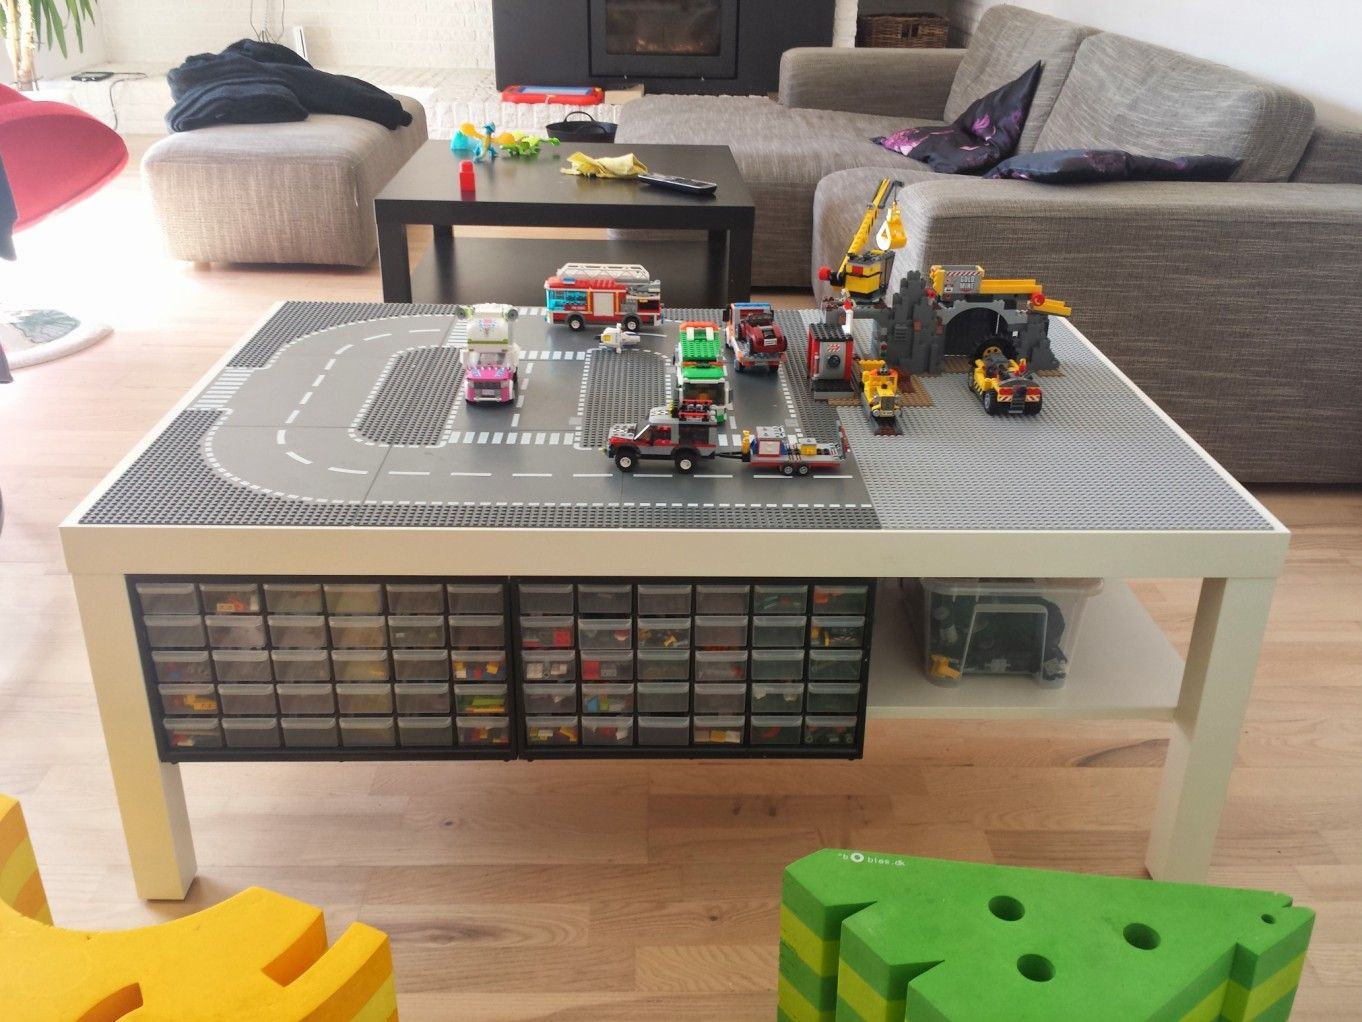 lego table ikea lack table maybe 1 2 base plates for regular 1 2